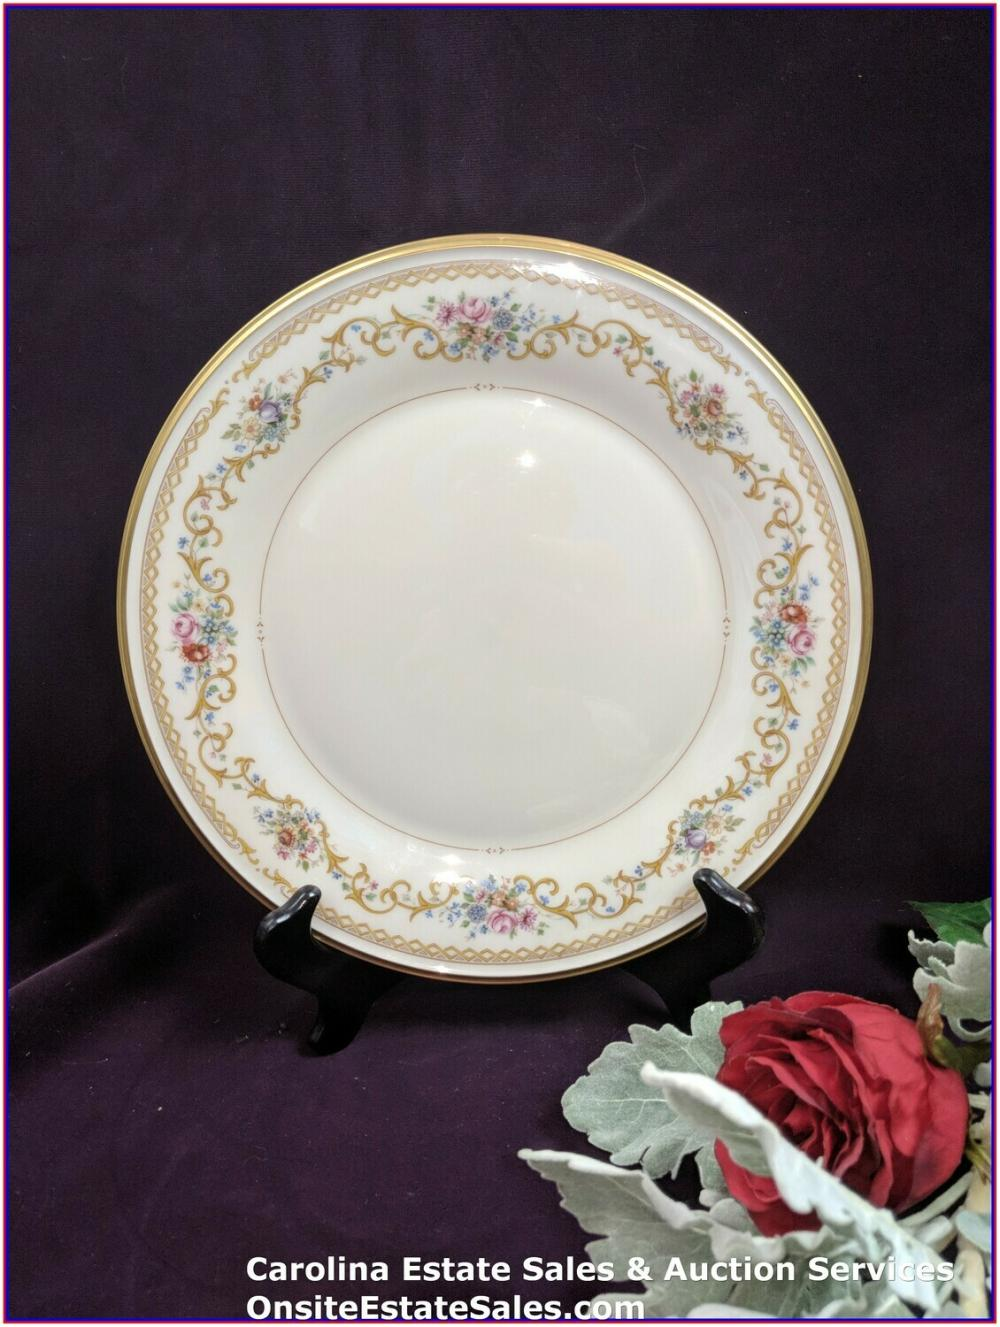 "Beautiful Vintage Lenox China - ""Queens Garden"" - 10 3/4"" Dinner Plate/Qty: 22 Plates -EXCELLENT CONDITION"